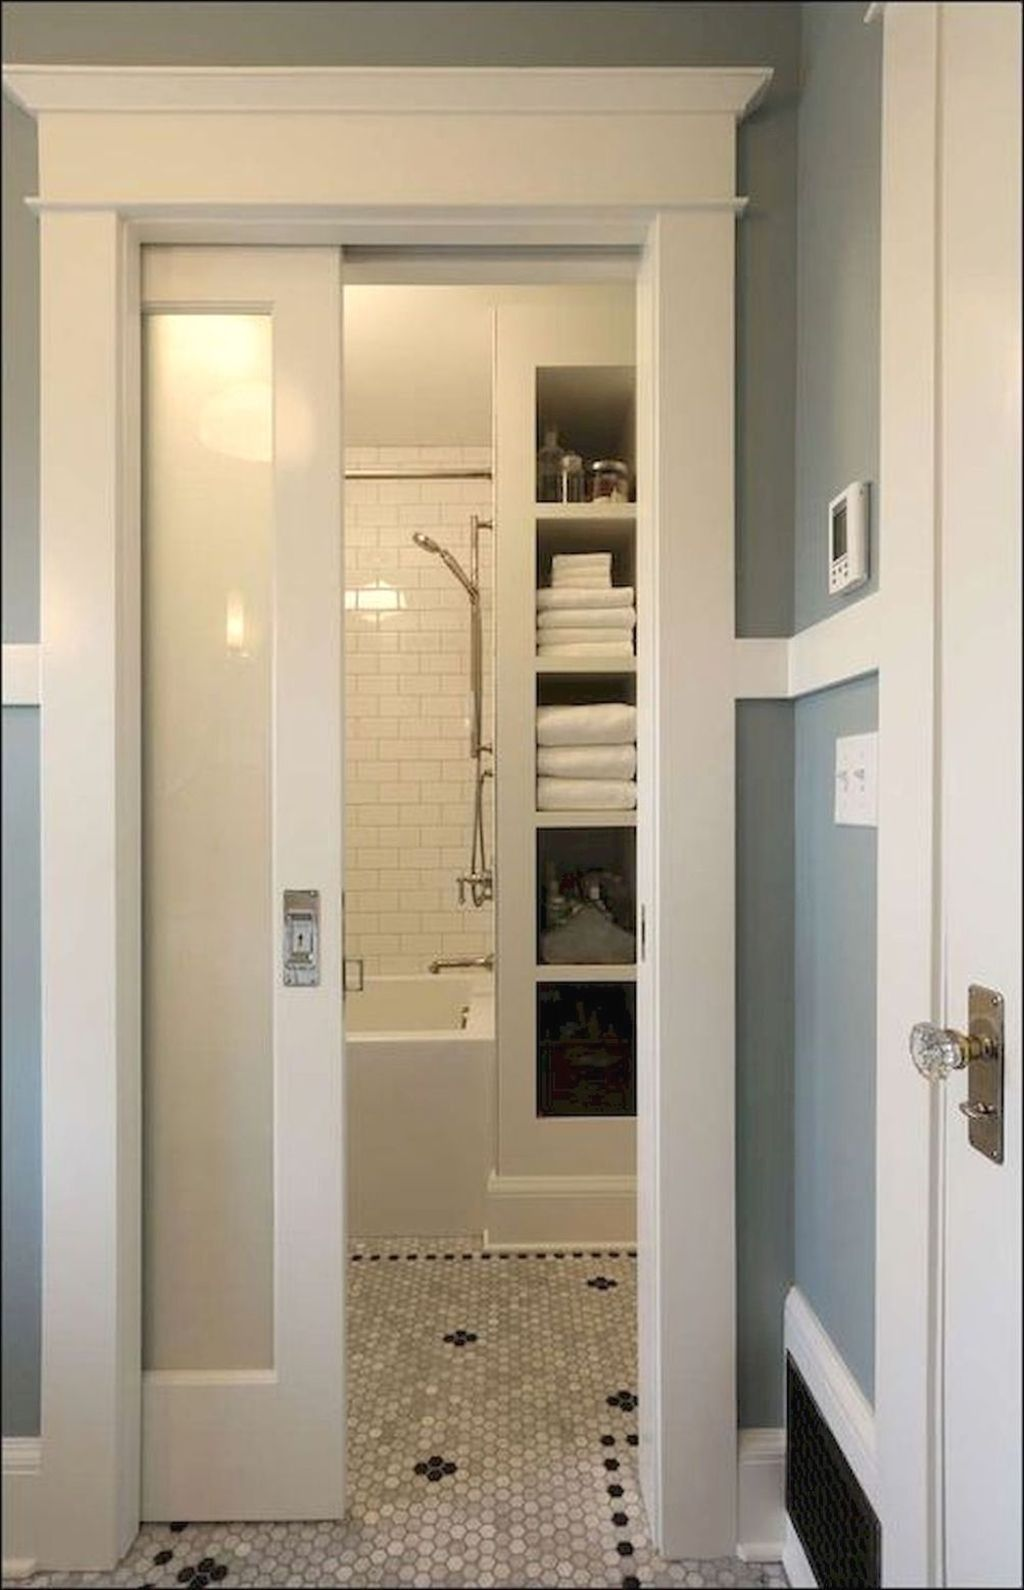 Awesome Small Bathroom Remodel Ideas On A Budget 26